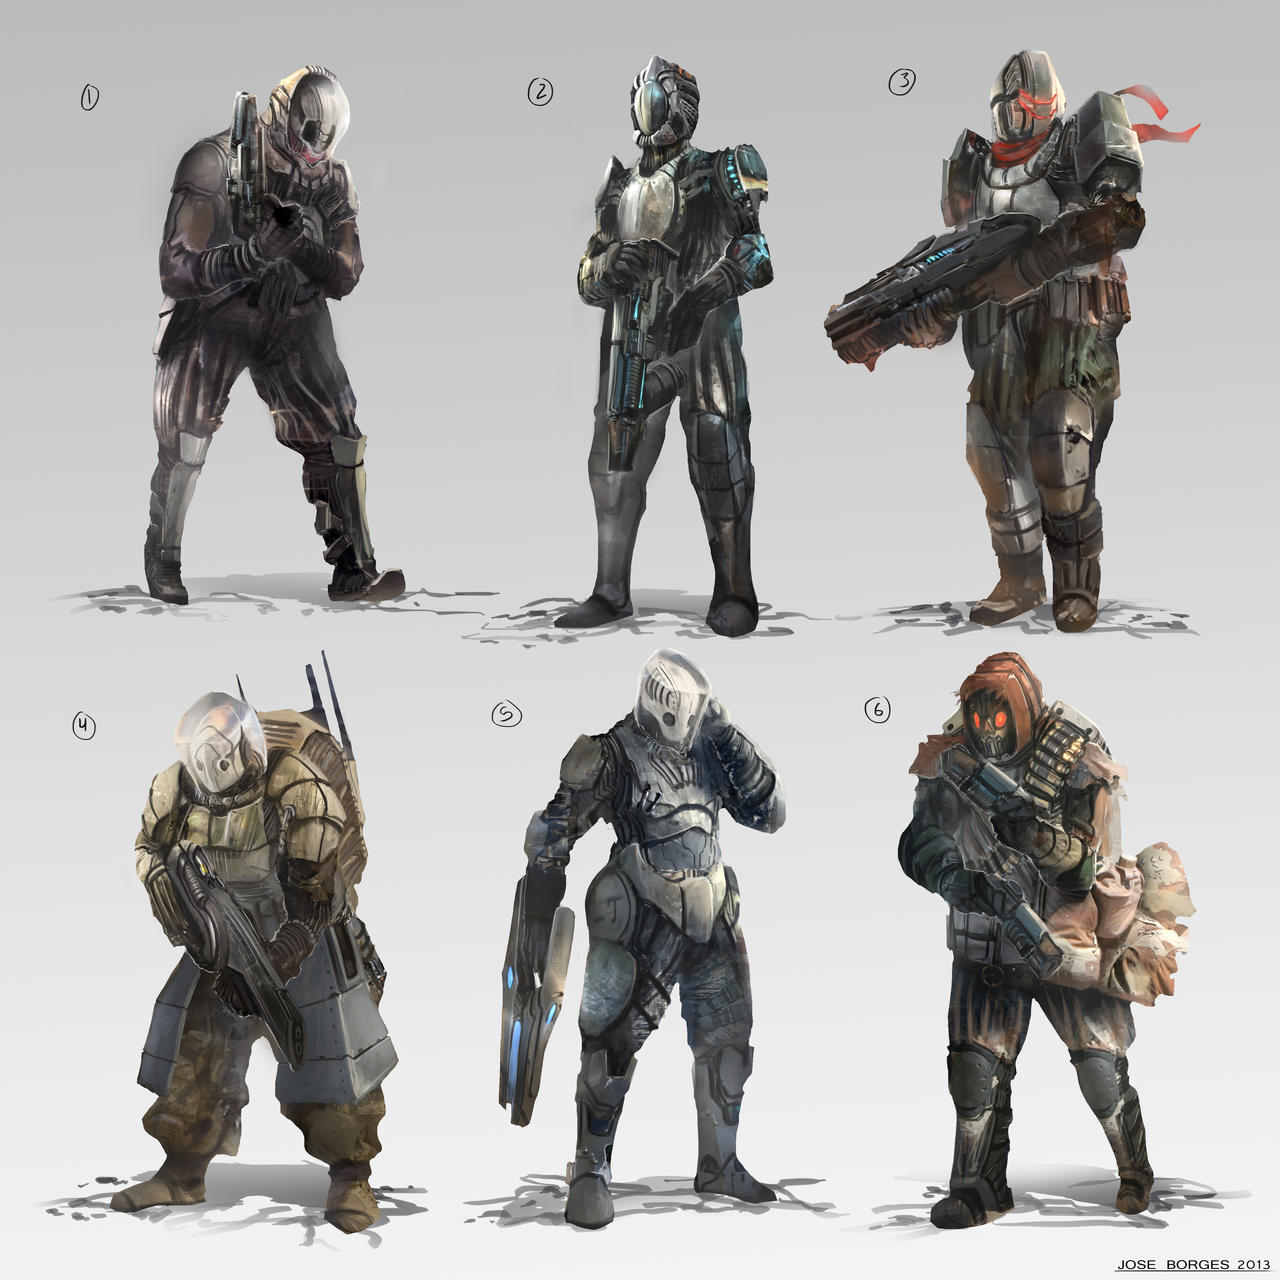 Sci-Fi Cybernetic Soldiers - Bing images